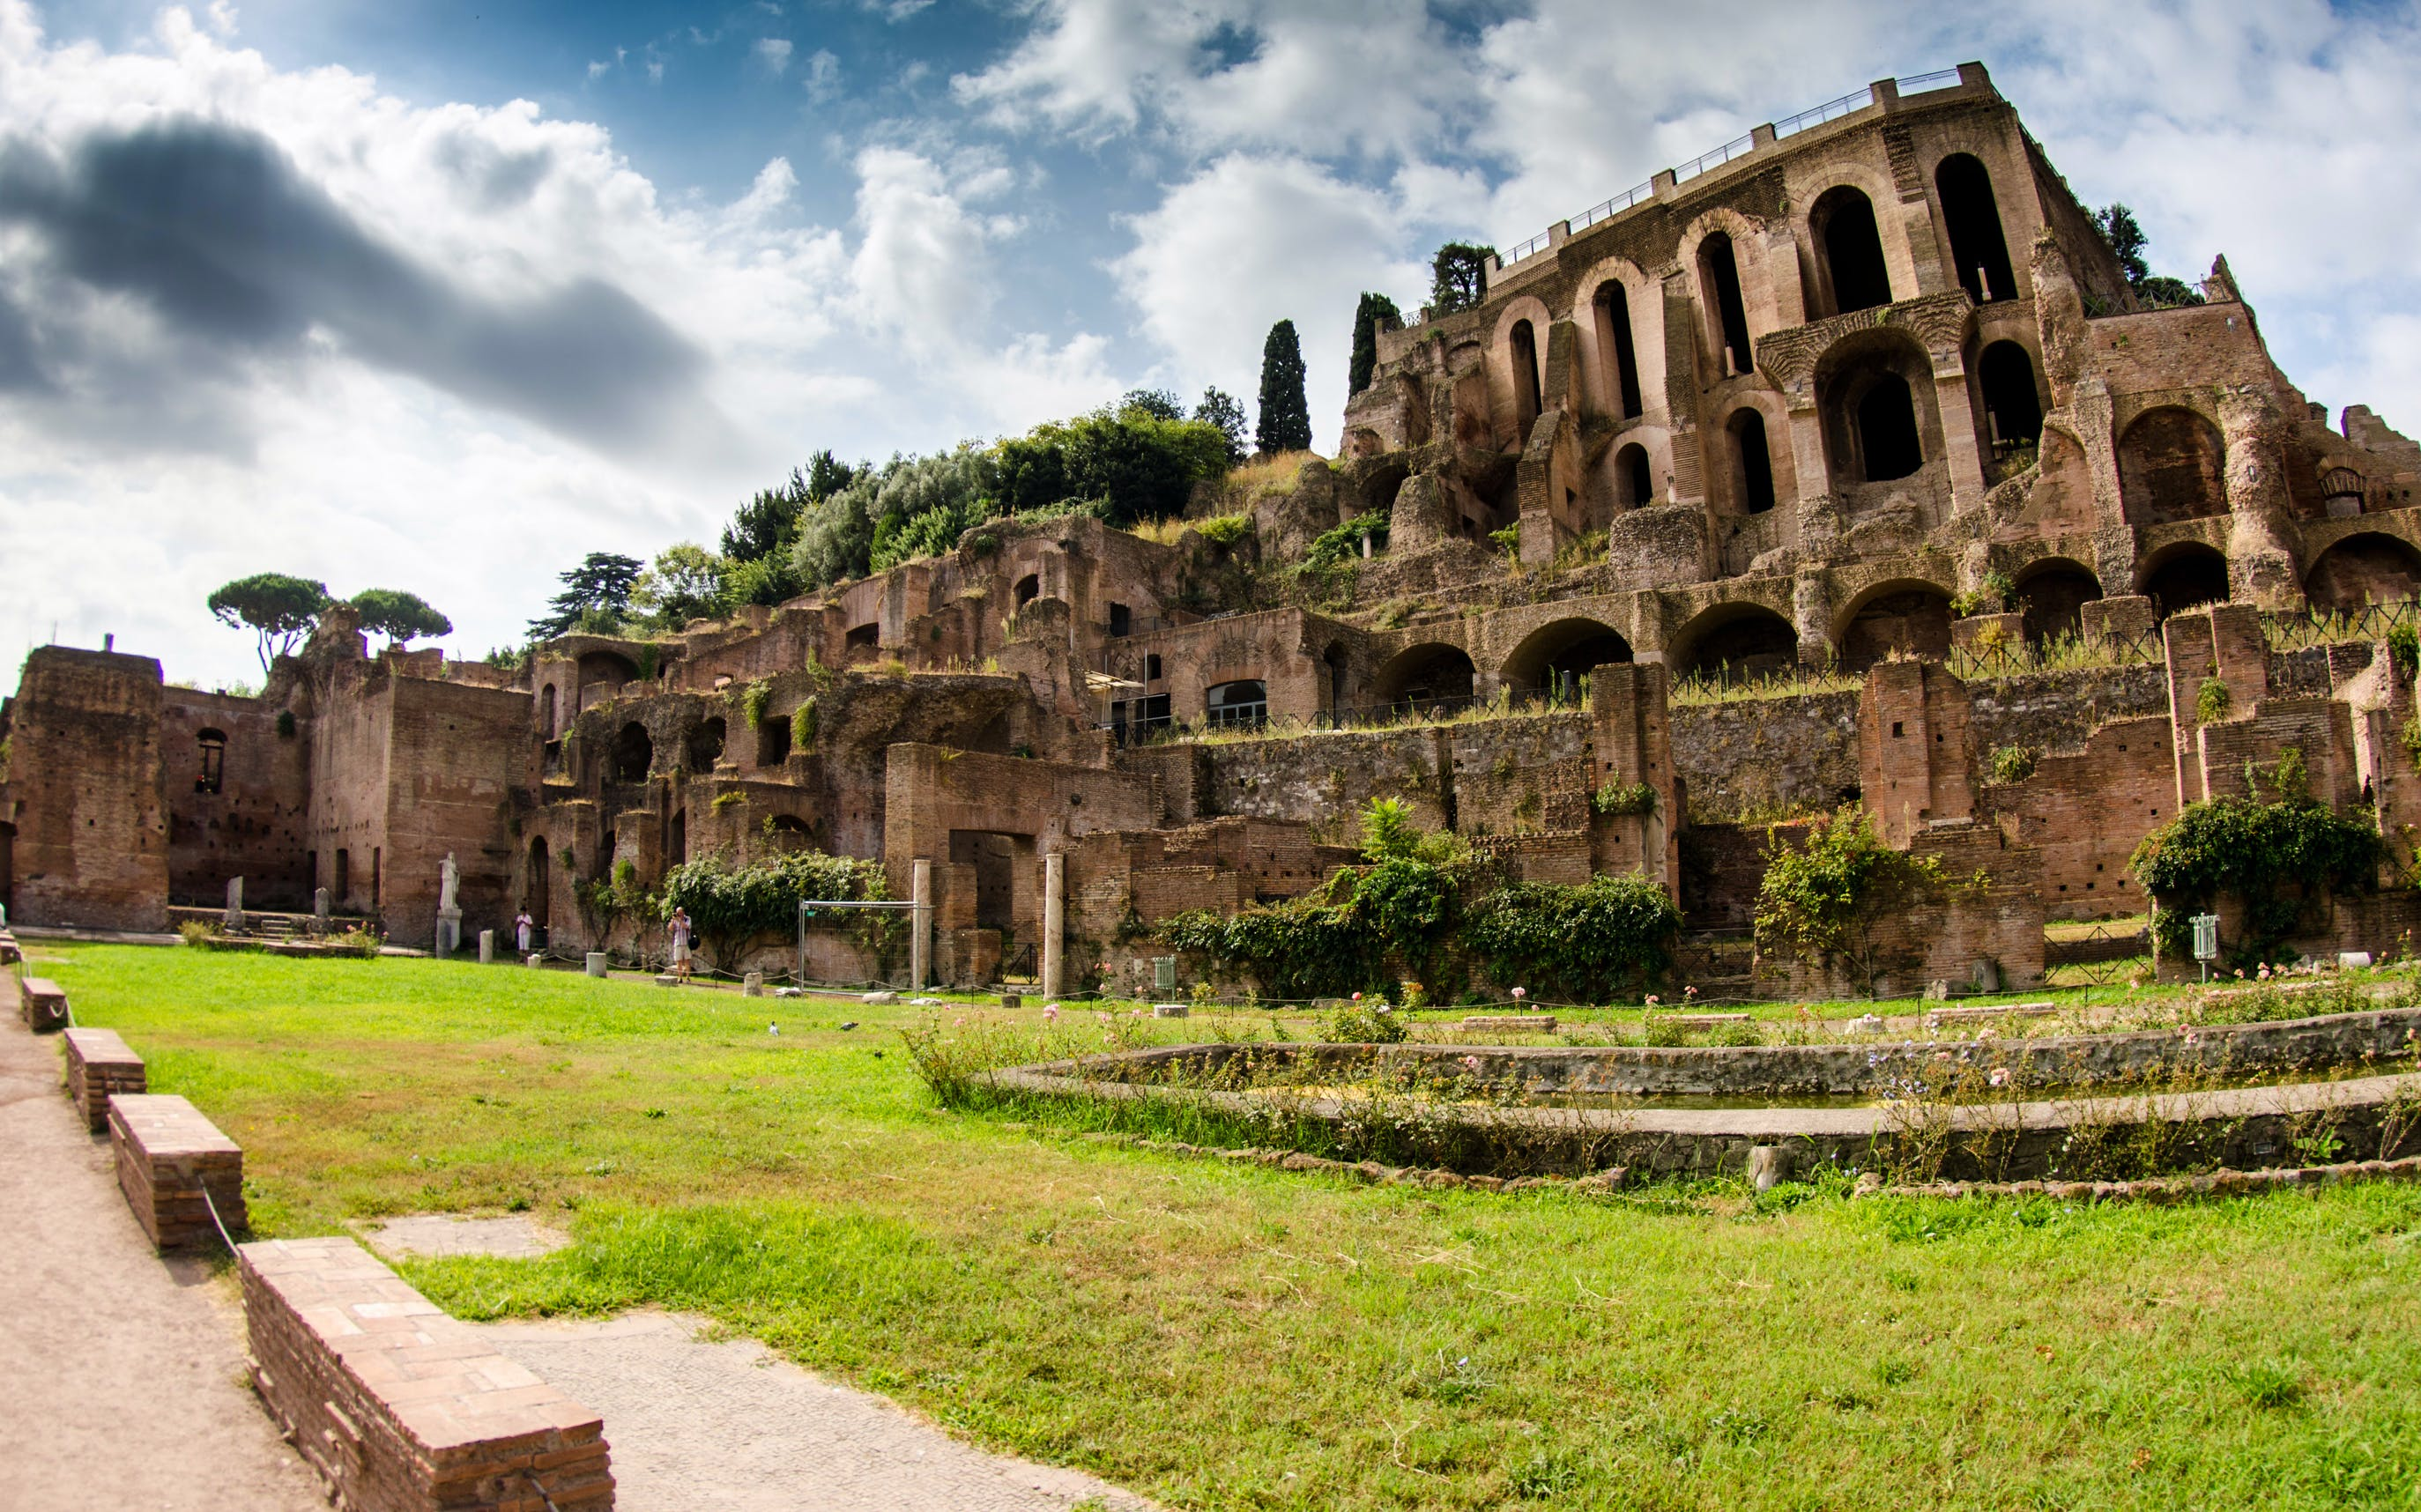 Skip the Line: Colosseum, Palatine Hill & Roman Forums Semi Private Tour